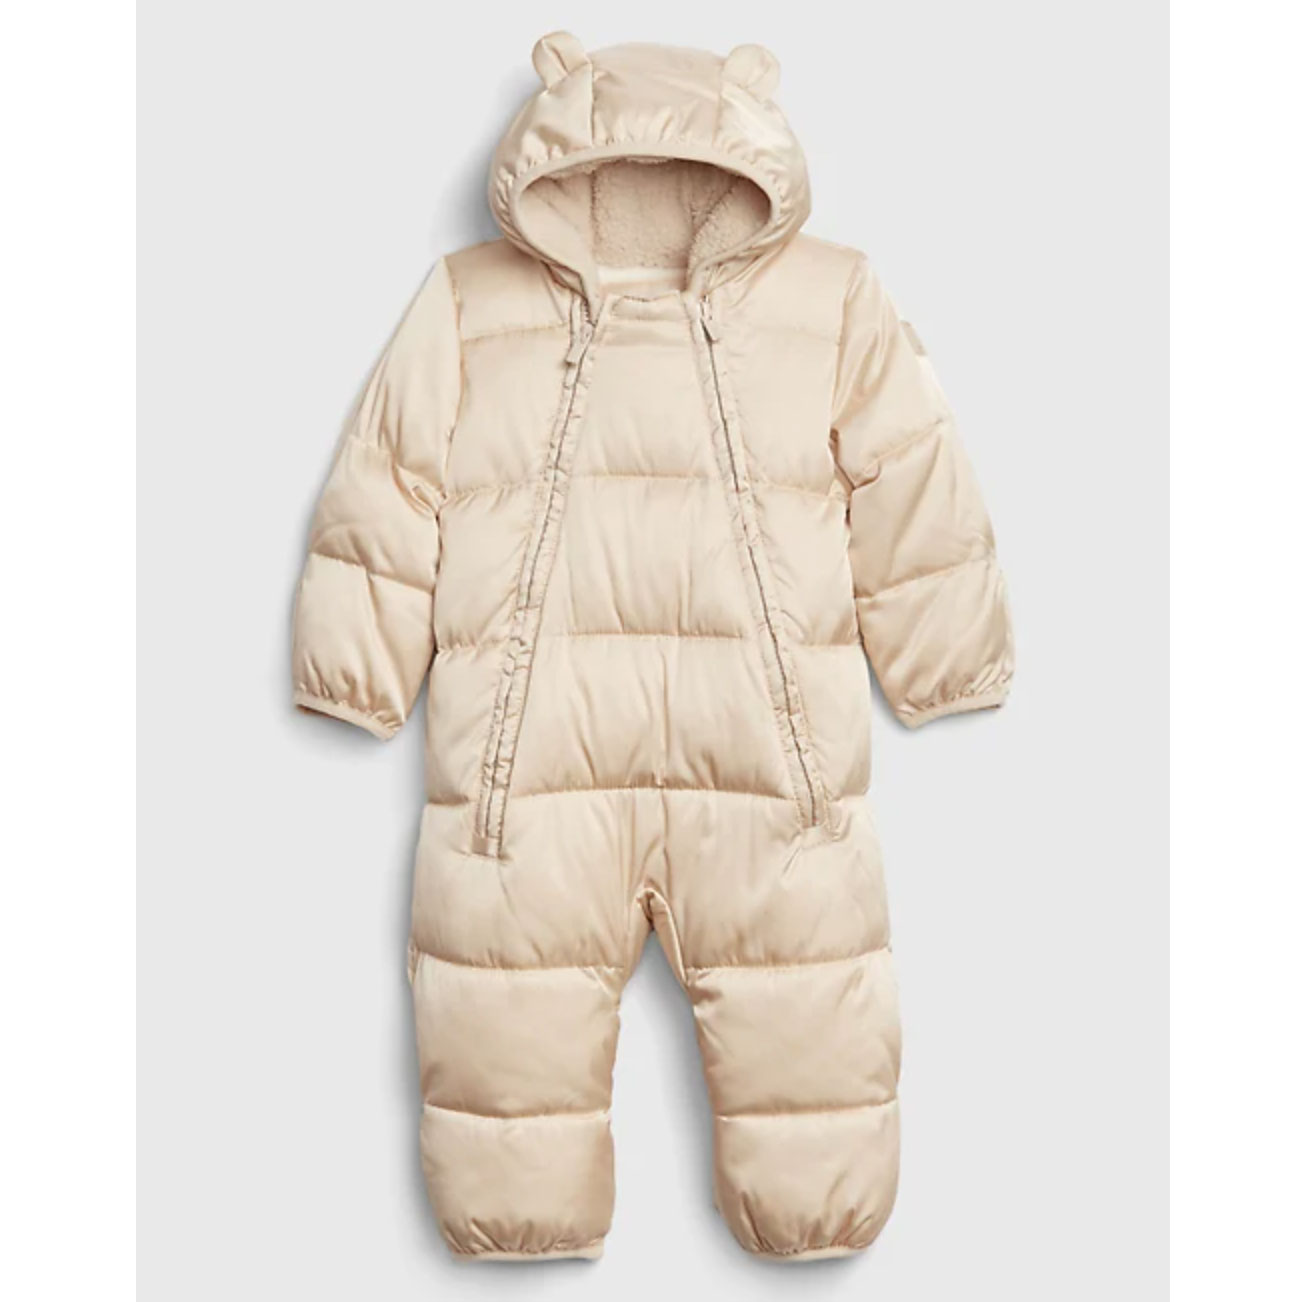 Gap Baby ColdControl Ultra Max Snowsuit